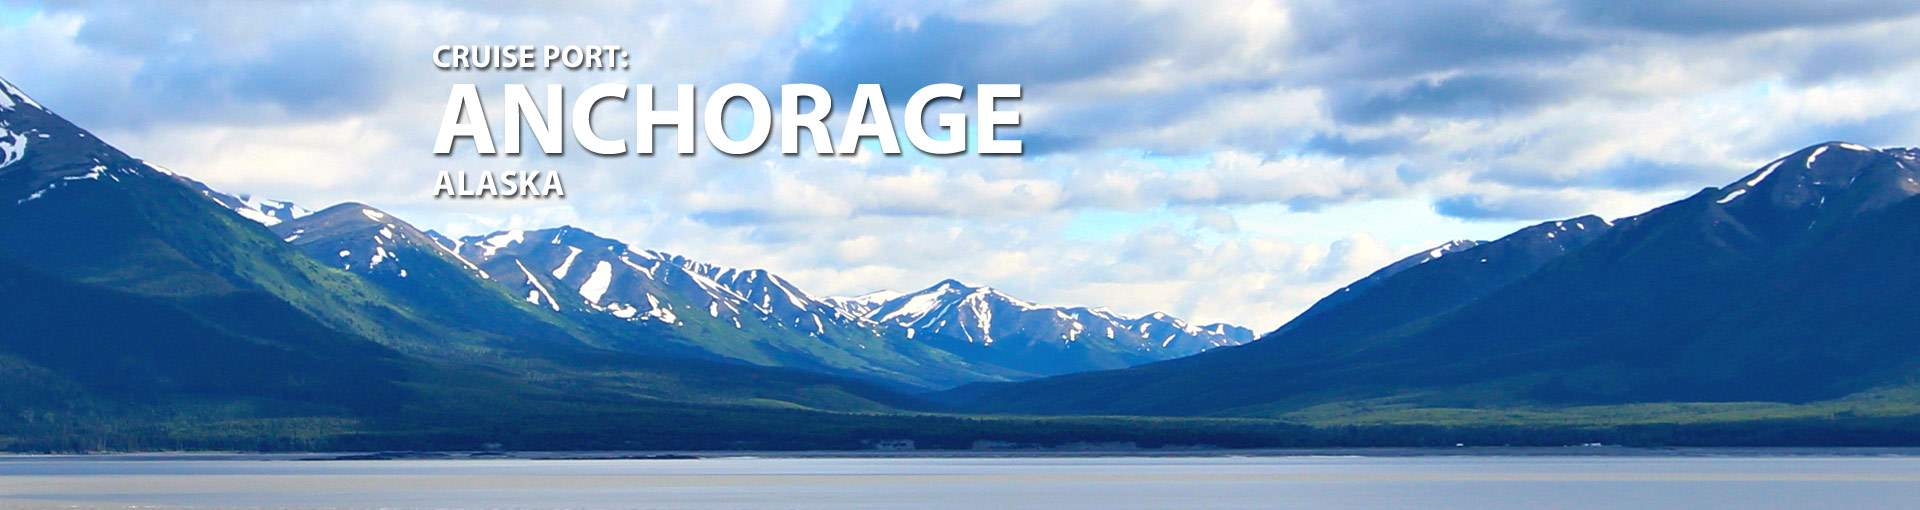 Cruises from Anchorage, Alaska